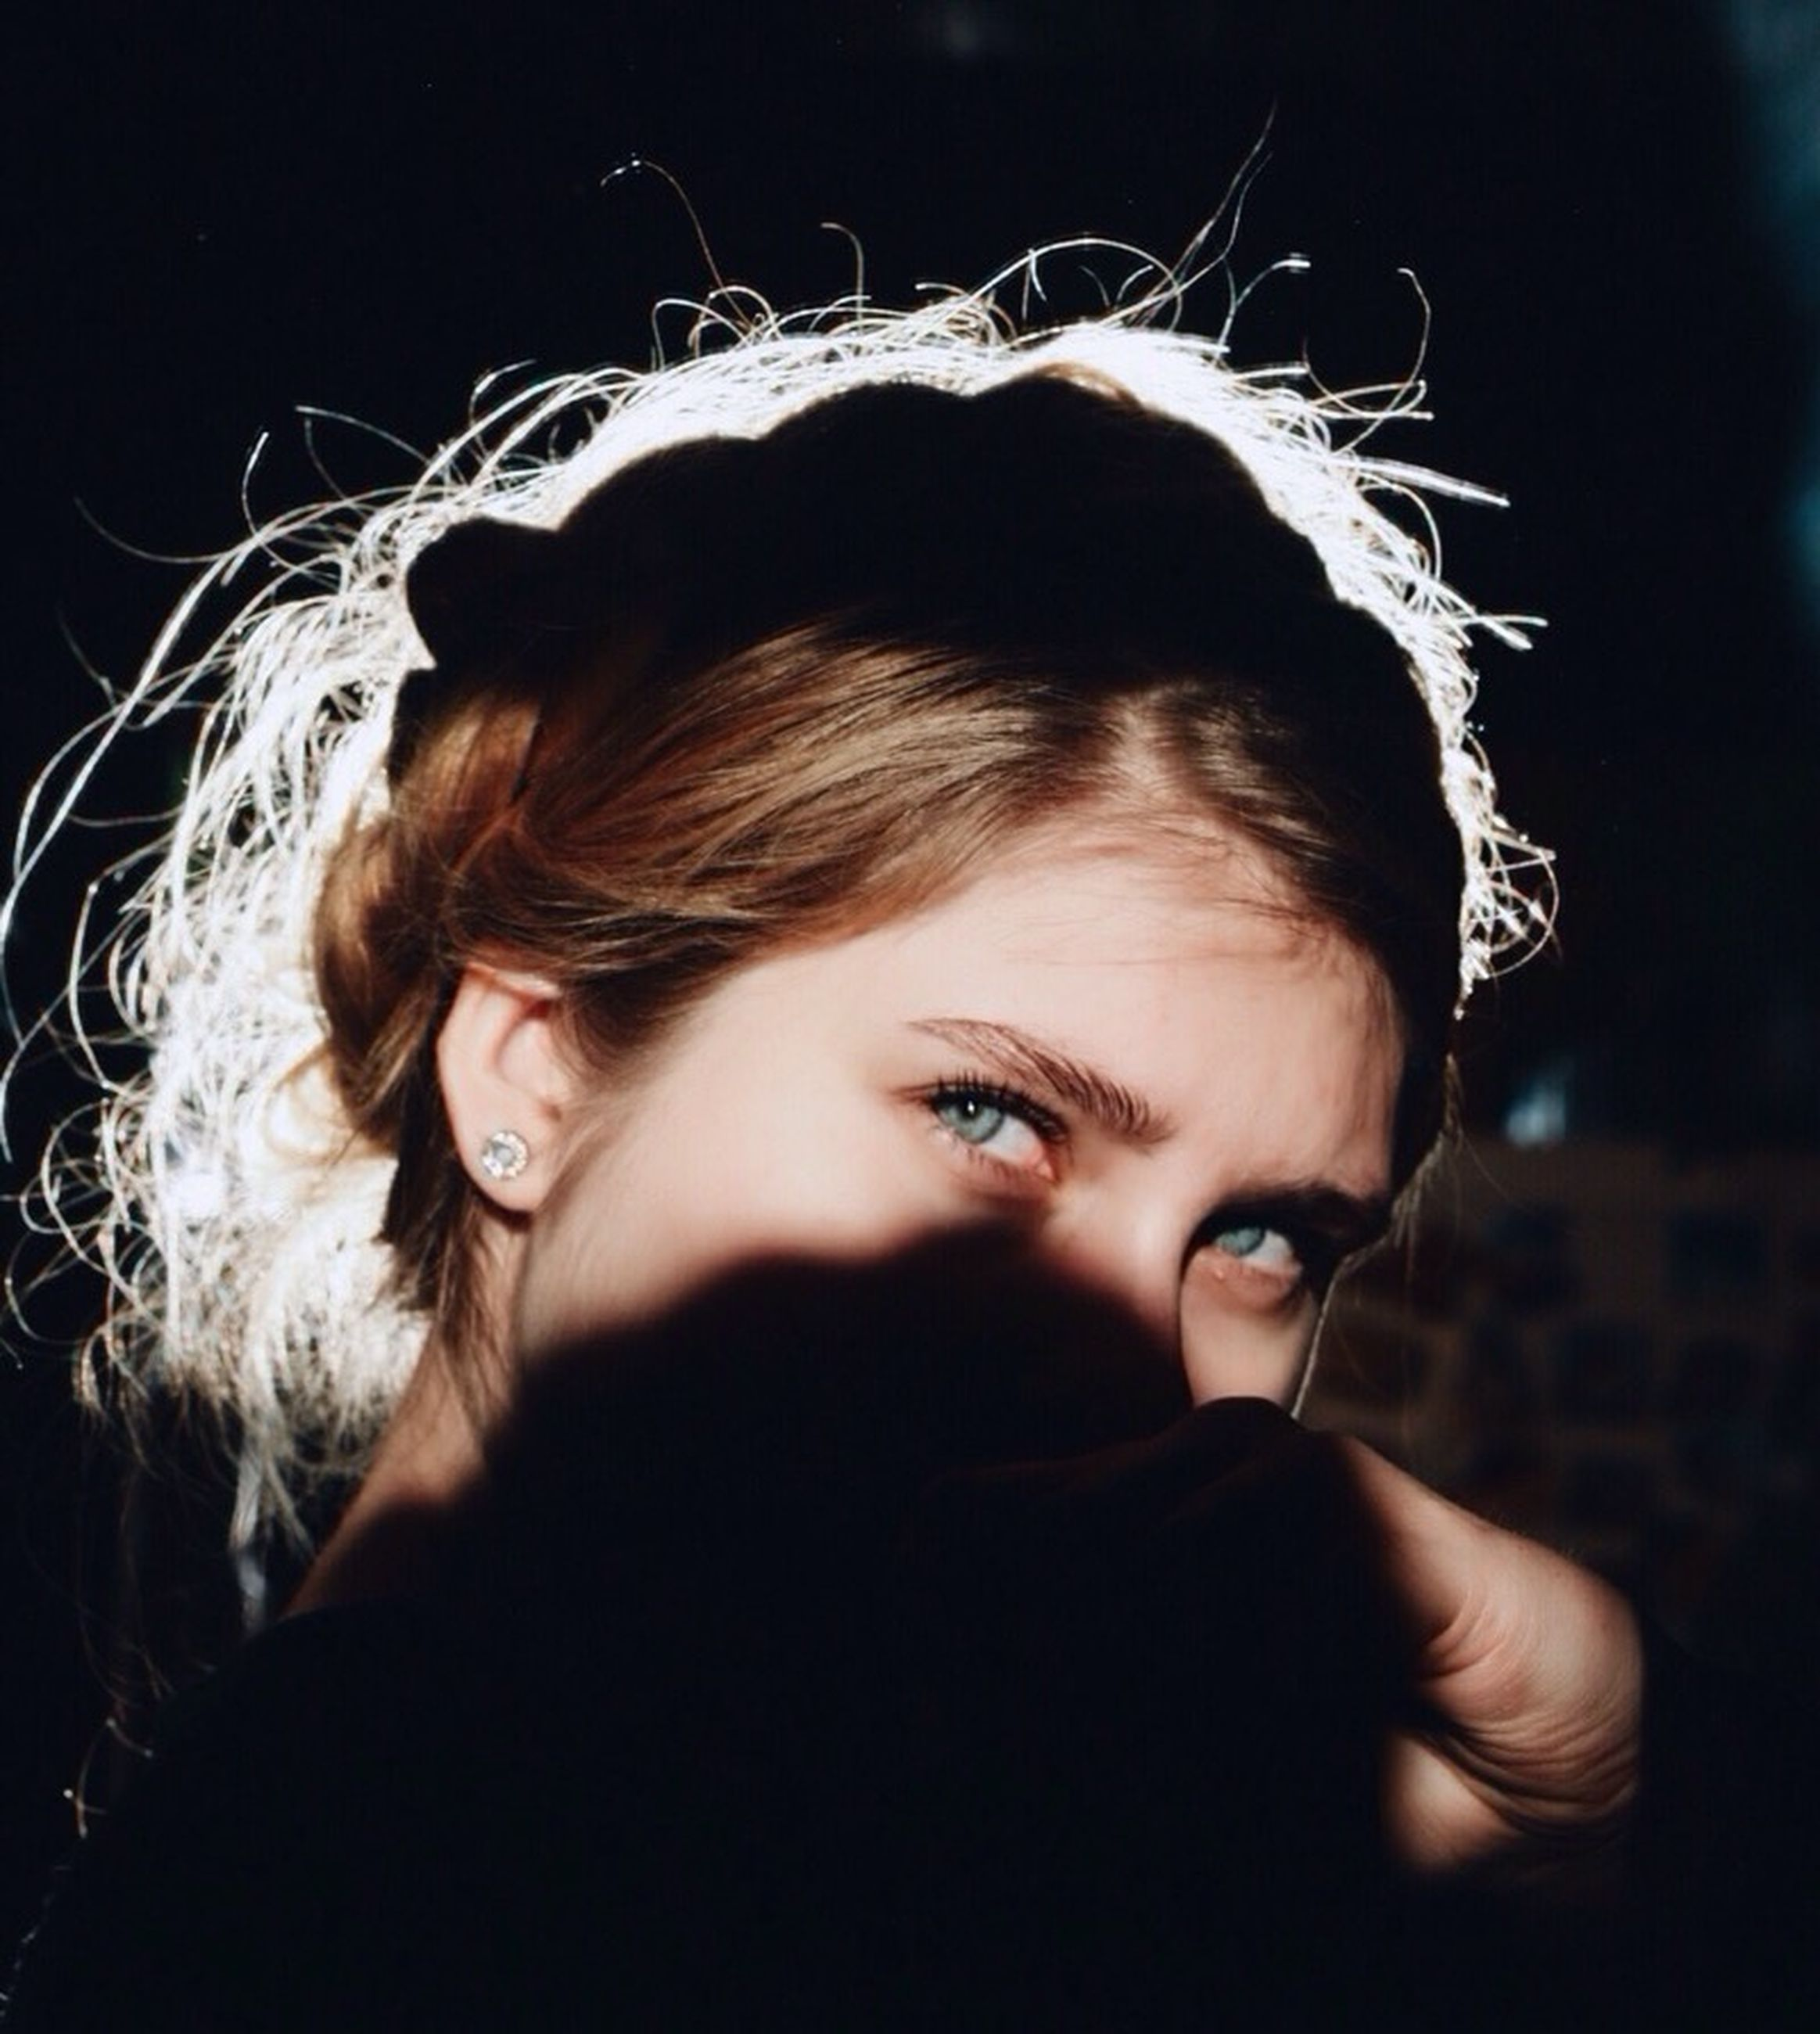 headshot, young adult, lifestyles, young women, person, portrait, looking at camera, long hair, close-up, front view, leisure activity, focus on foreground, contemplation, human face, head and shoulders, serious